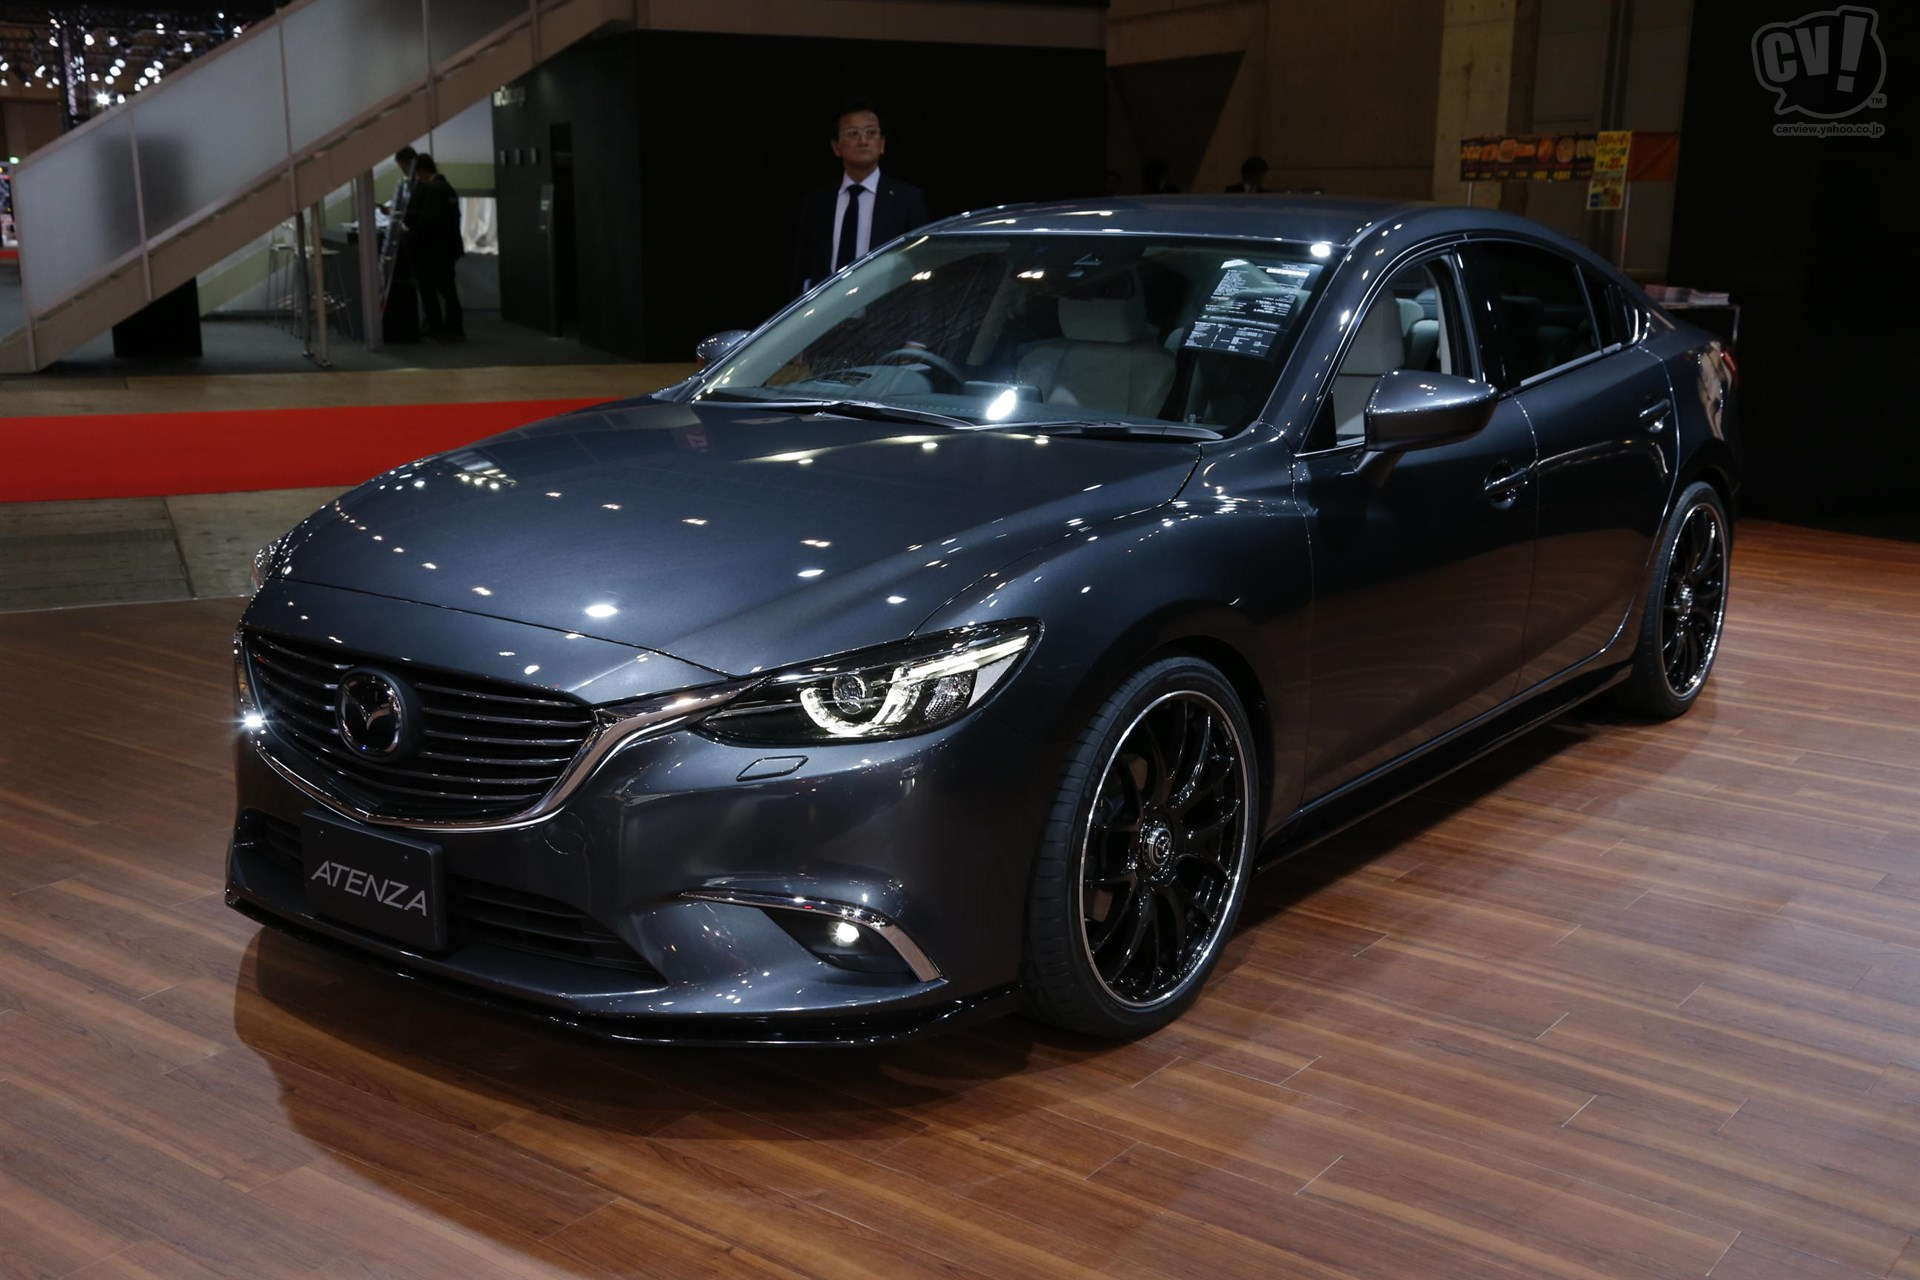 2016 mazda 6 gen3 5 general discussion page 40 mazda 6 forums mazda 6 forum mazda. Black Bedroom Furniture Sets. Home Design Ideas